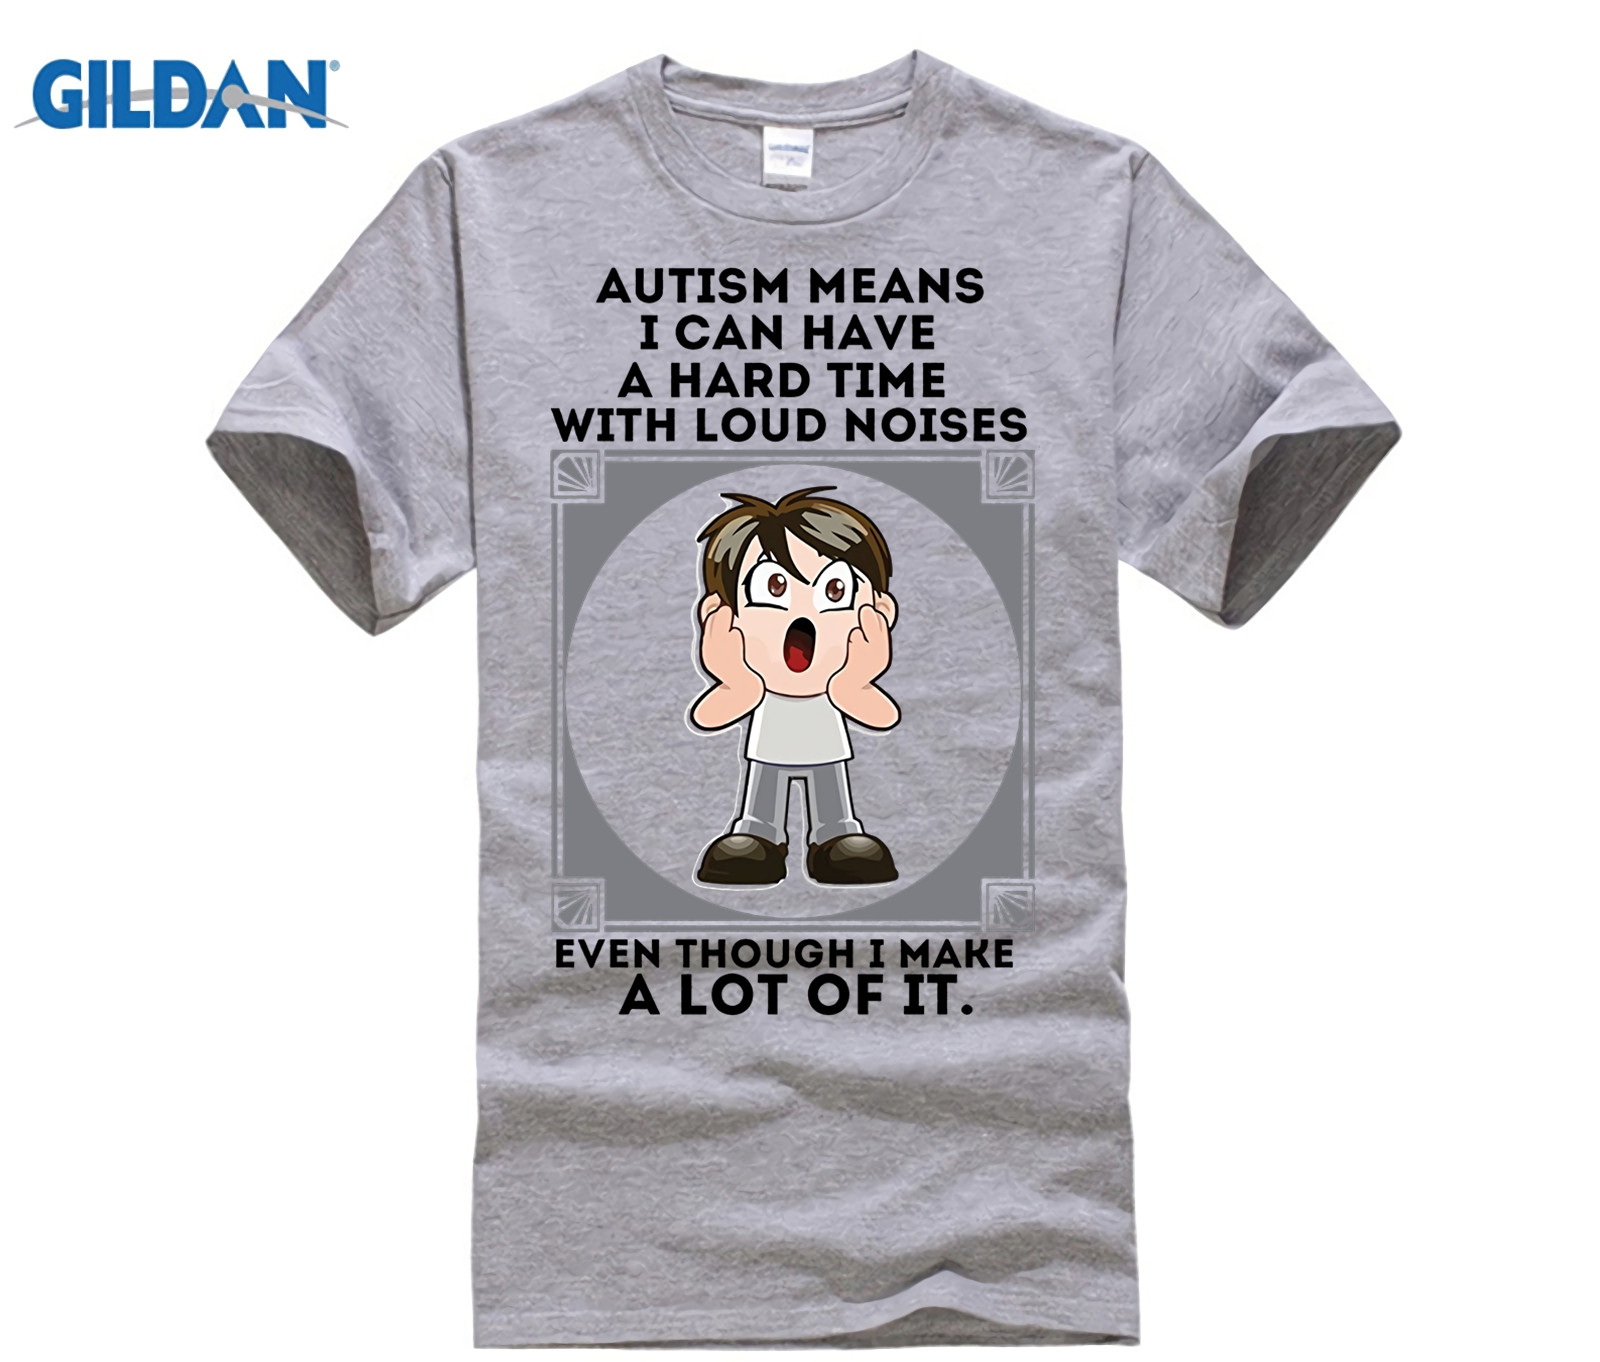 8f4506022 GILDAN Autism Awareness T Shirt Autism Shirts for Kid Dad Mom-in T-Shirts  from Men's Clothing on Aliexpress.com | Alibaba Group